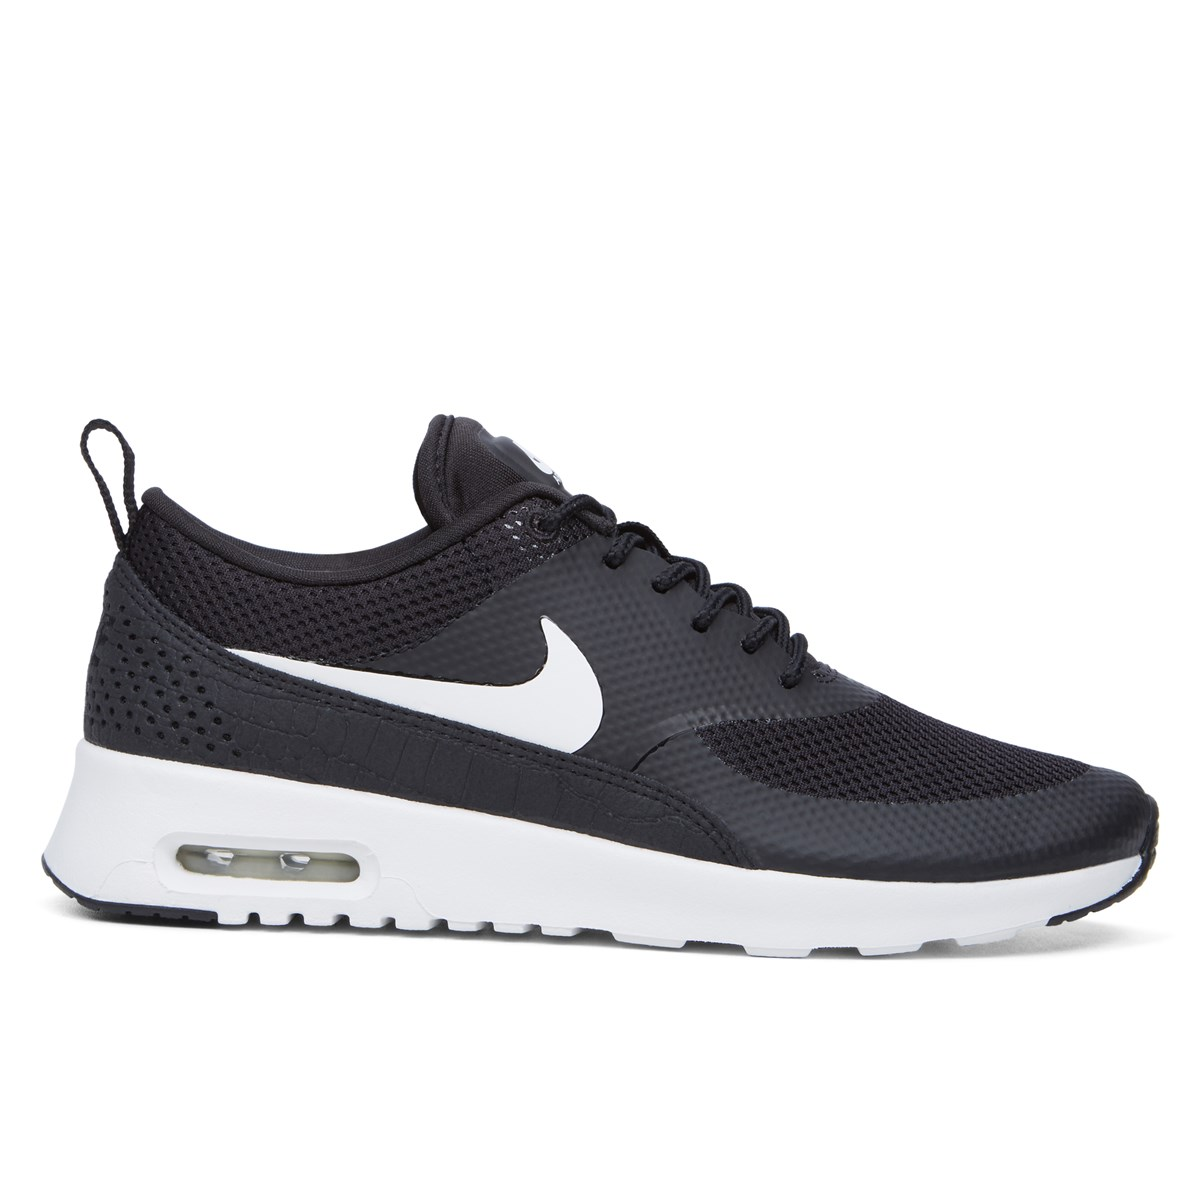 876e9ed1a9 Women's Air Max Thea Black Sneaker | Little Burgundy